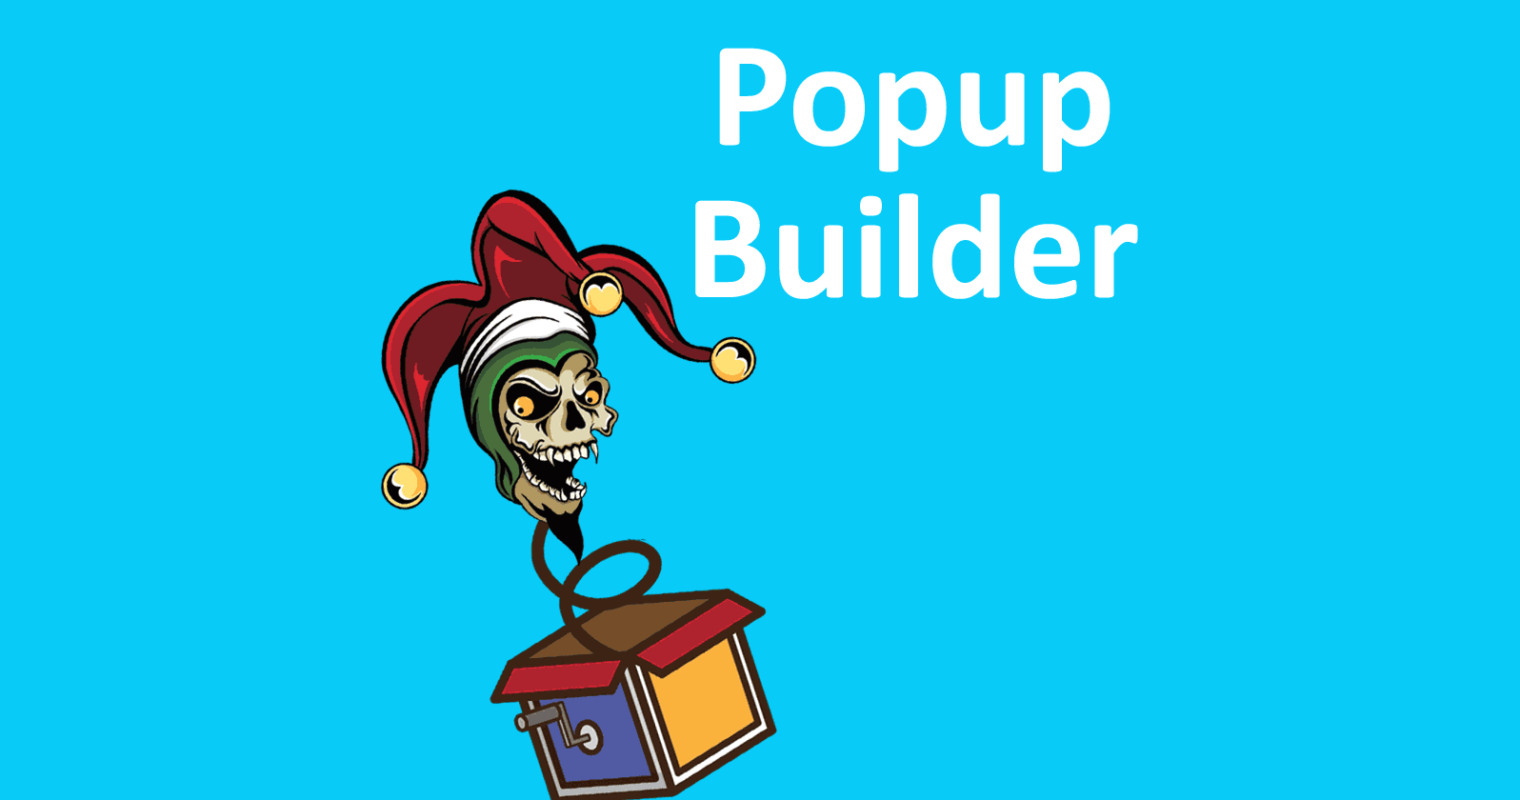 WordPress Popup Builder Contains Serious Vulnerabilities